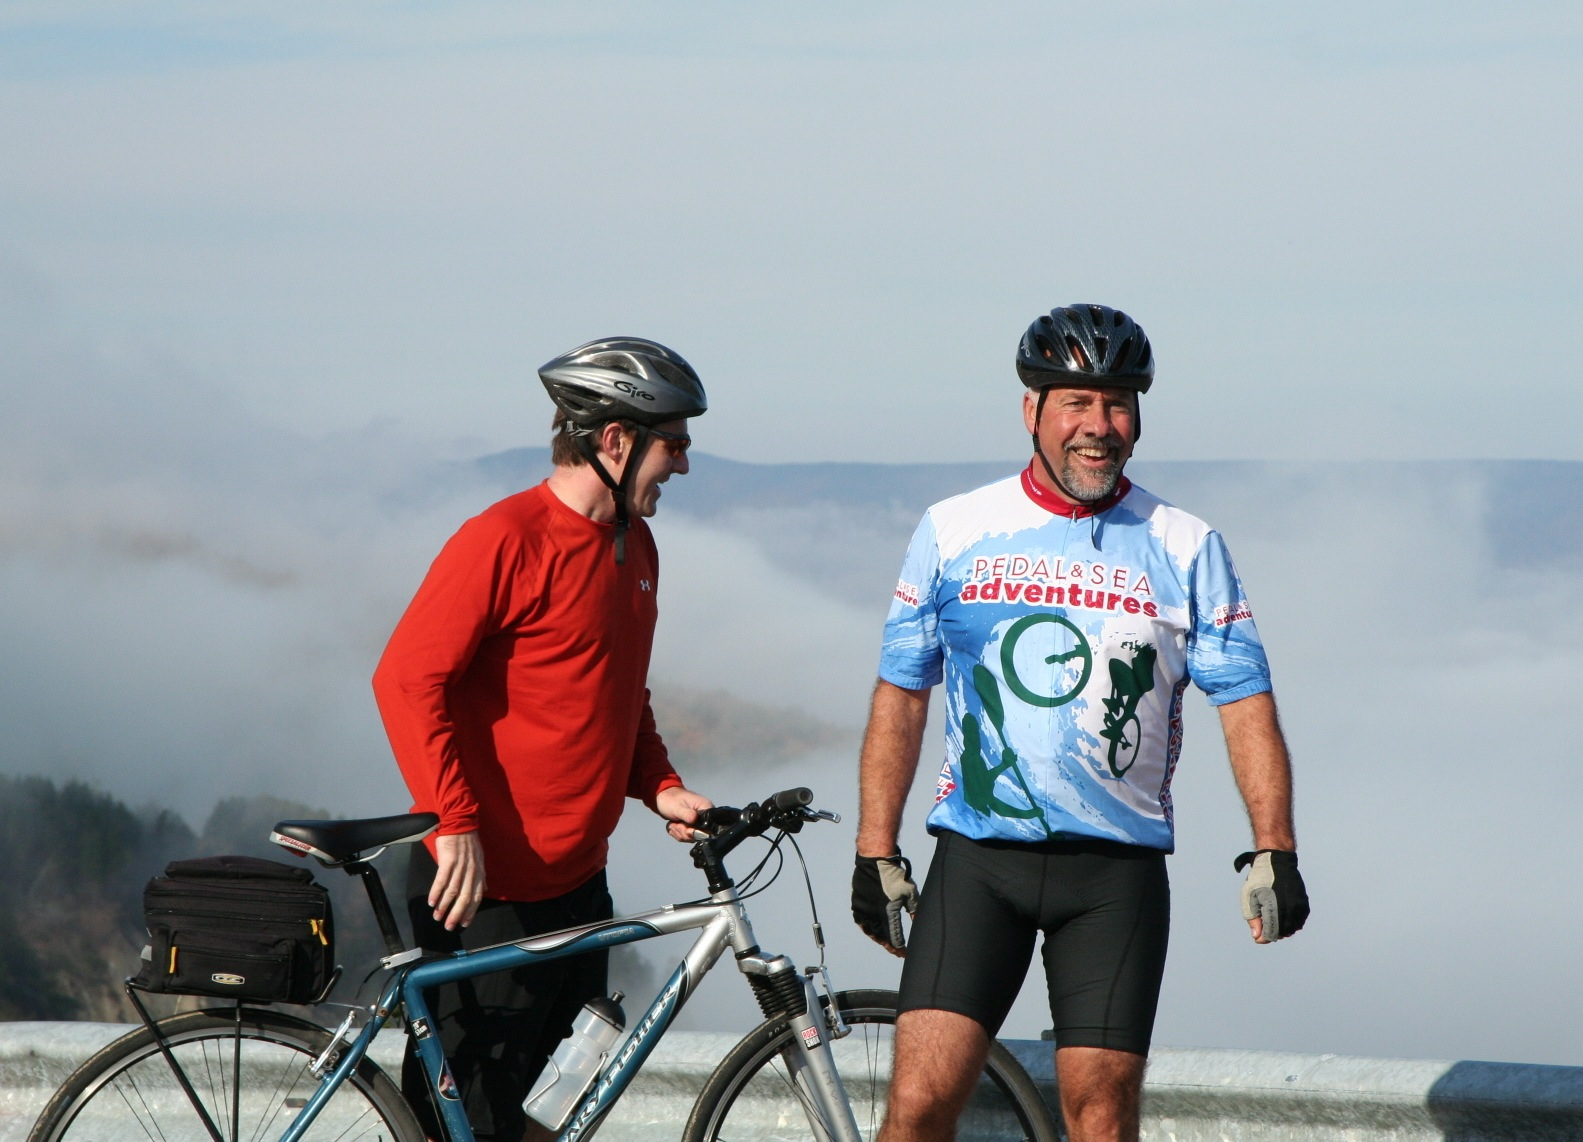 cabot-trail-nova-scotia-bike-tour.jpg